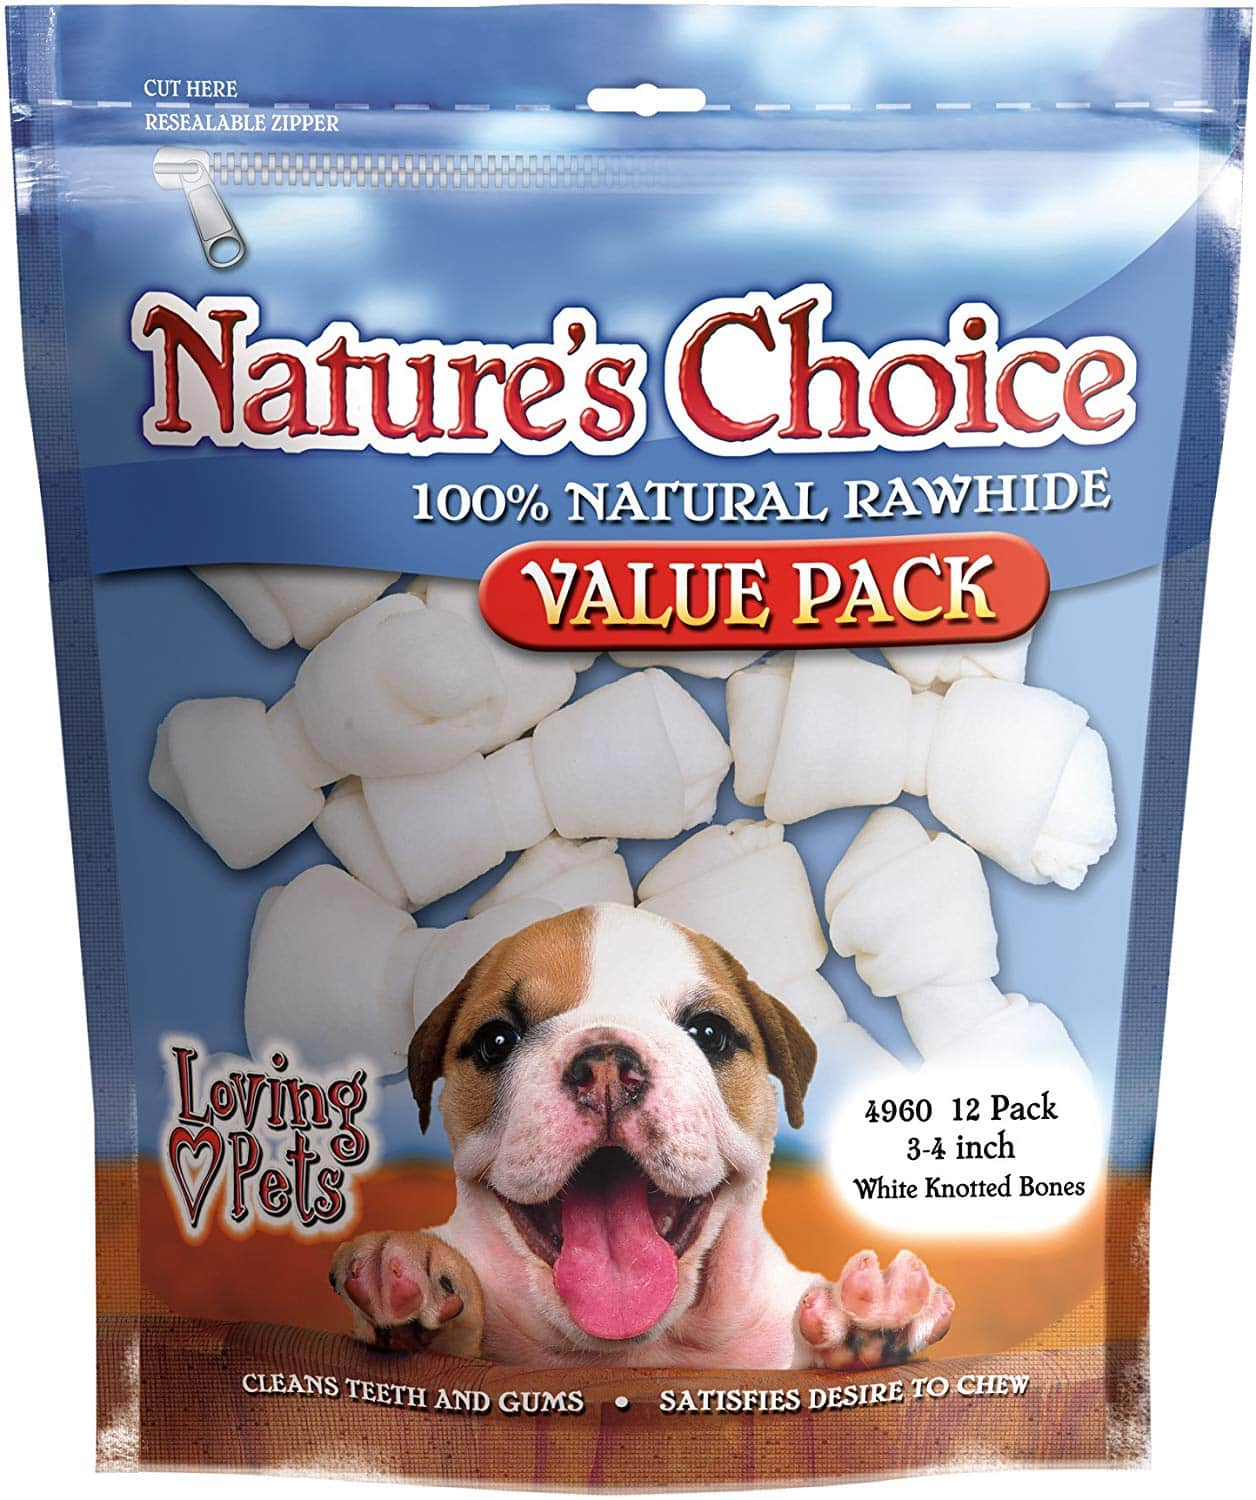 Loving Pets Products Dog Treats: It's Purely Natural Dog Treat, 4-Ounce - Chicken Tenders $1.80 & More FS w/ Prime